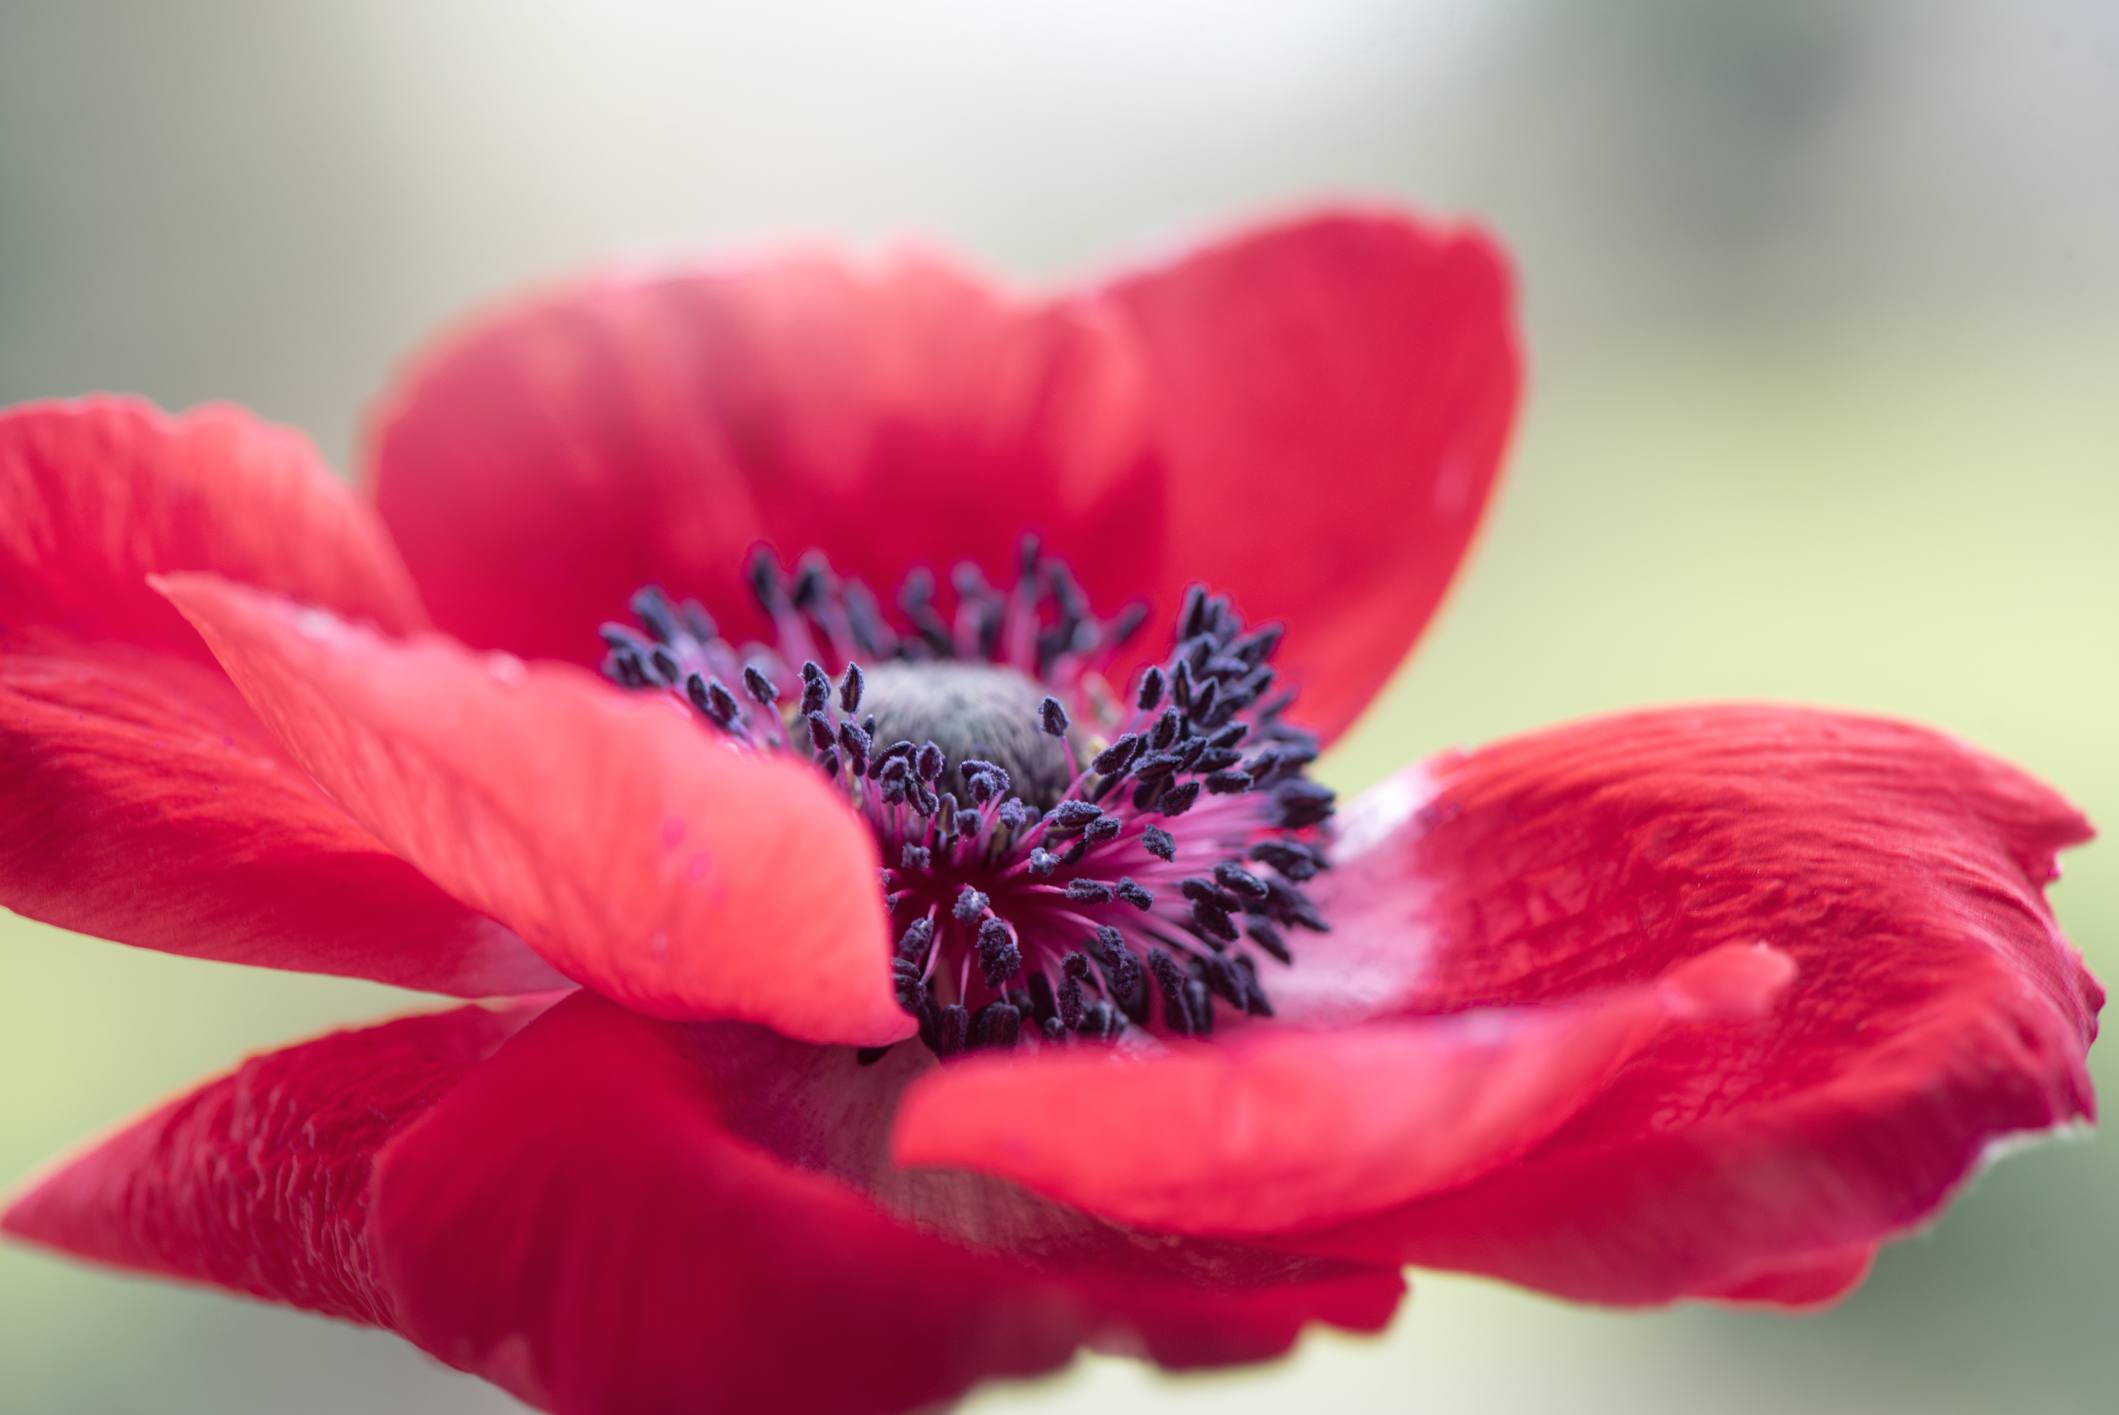 Close up of an anemone flower